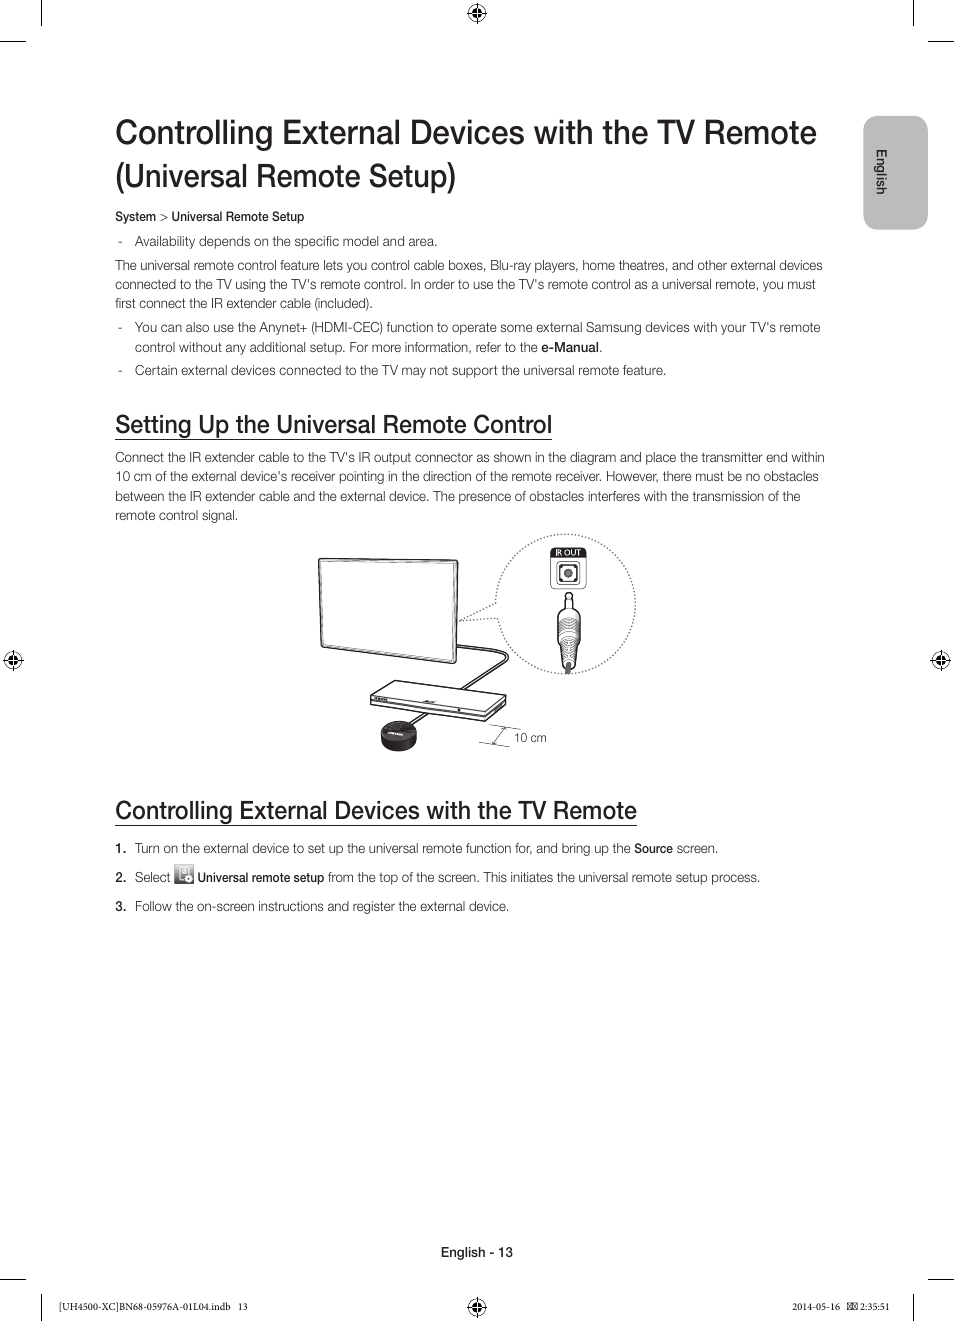 Controlling External Devices With The Tv Remote Universal Remote